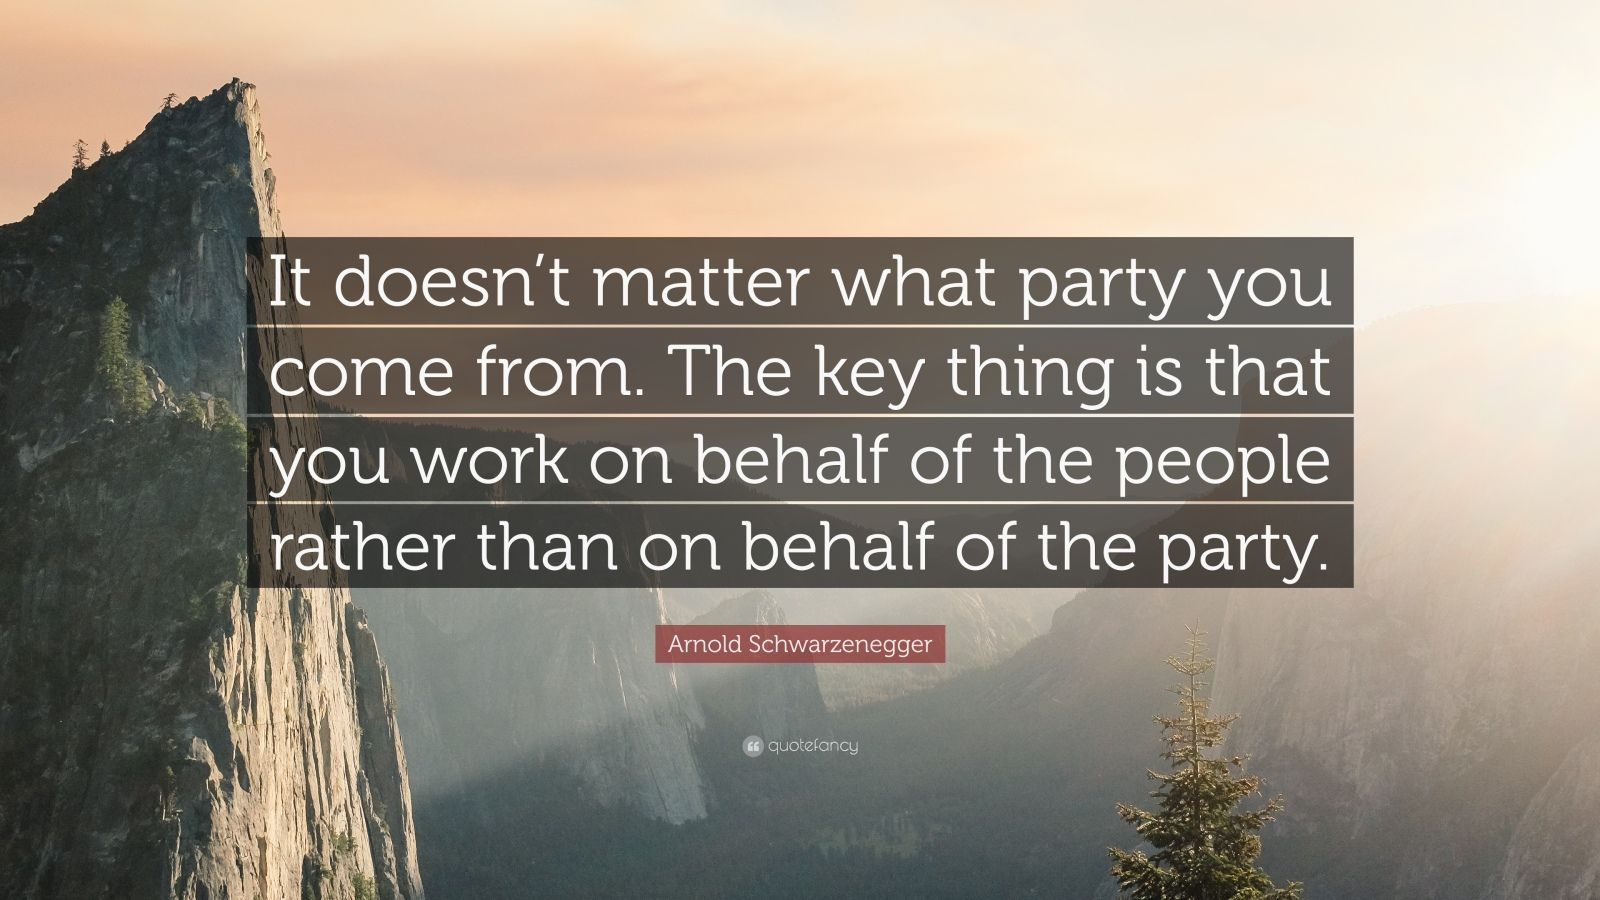 """Arnold Schwarzenegger Quote: """"It doesn't matter what party you come from. The key thing is that you work on behalf of the people rather than on behalf of the party."""""""